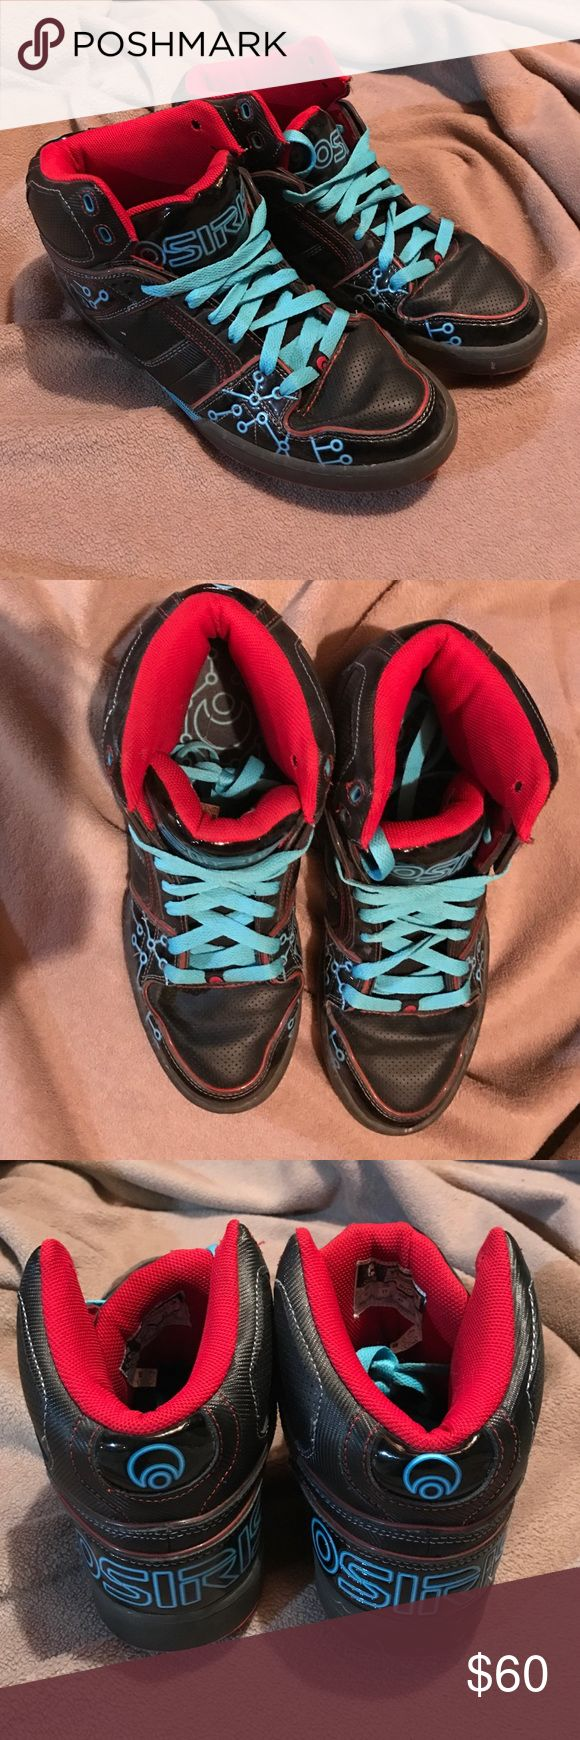 Tron Legacy Osiris Shoes (limited edition) Size 12 - only worn a few days - almost perfect condition Osiris Shoes Sneakers